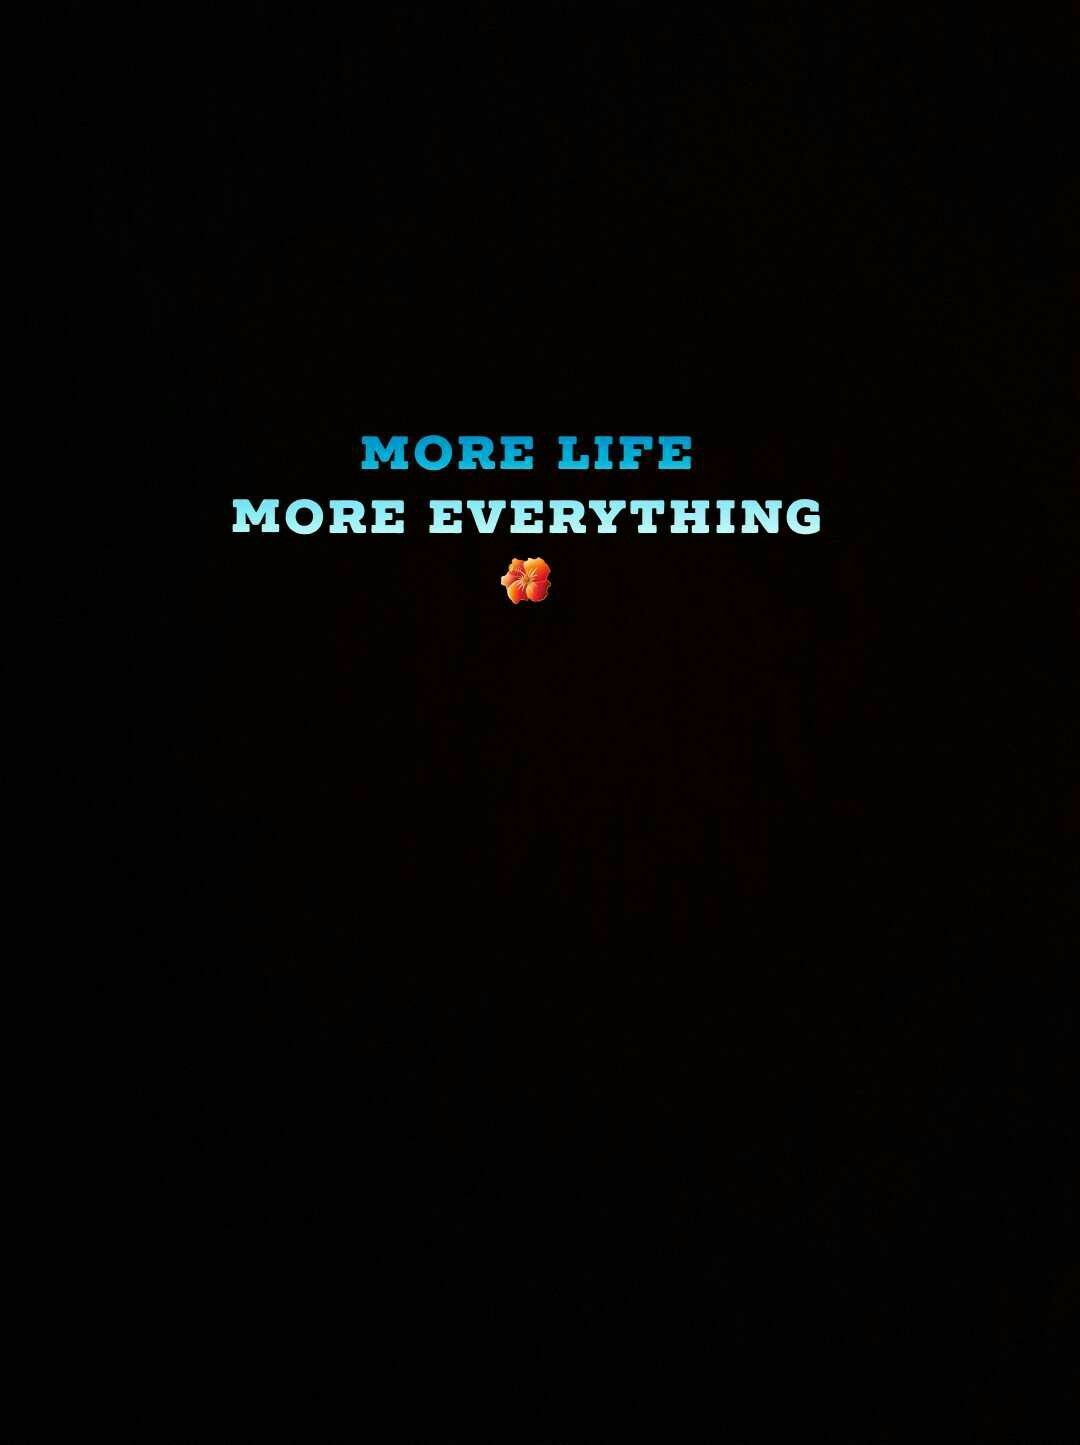 1080x1445 drake #more #morelife #motivation #wallpaper | Quotes. | Pinterest